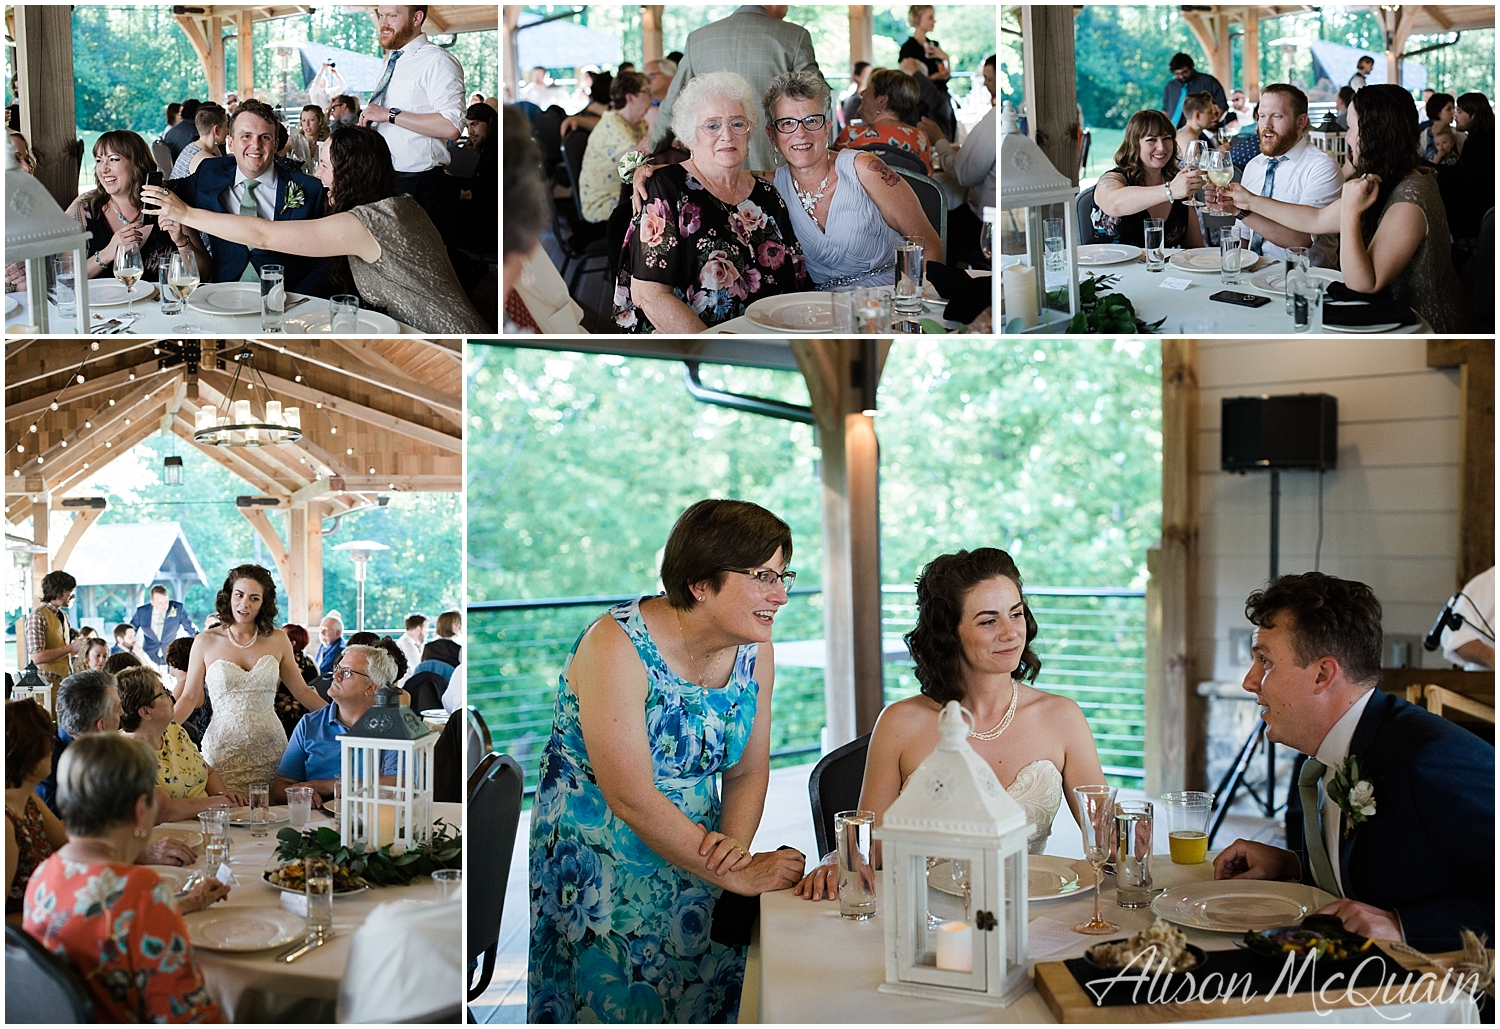 2018-05-23_0027LandC_wedding_dancingbearlodge_townsend_tn_amp.jpg